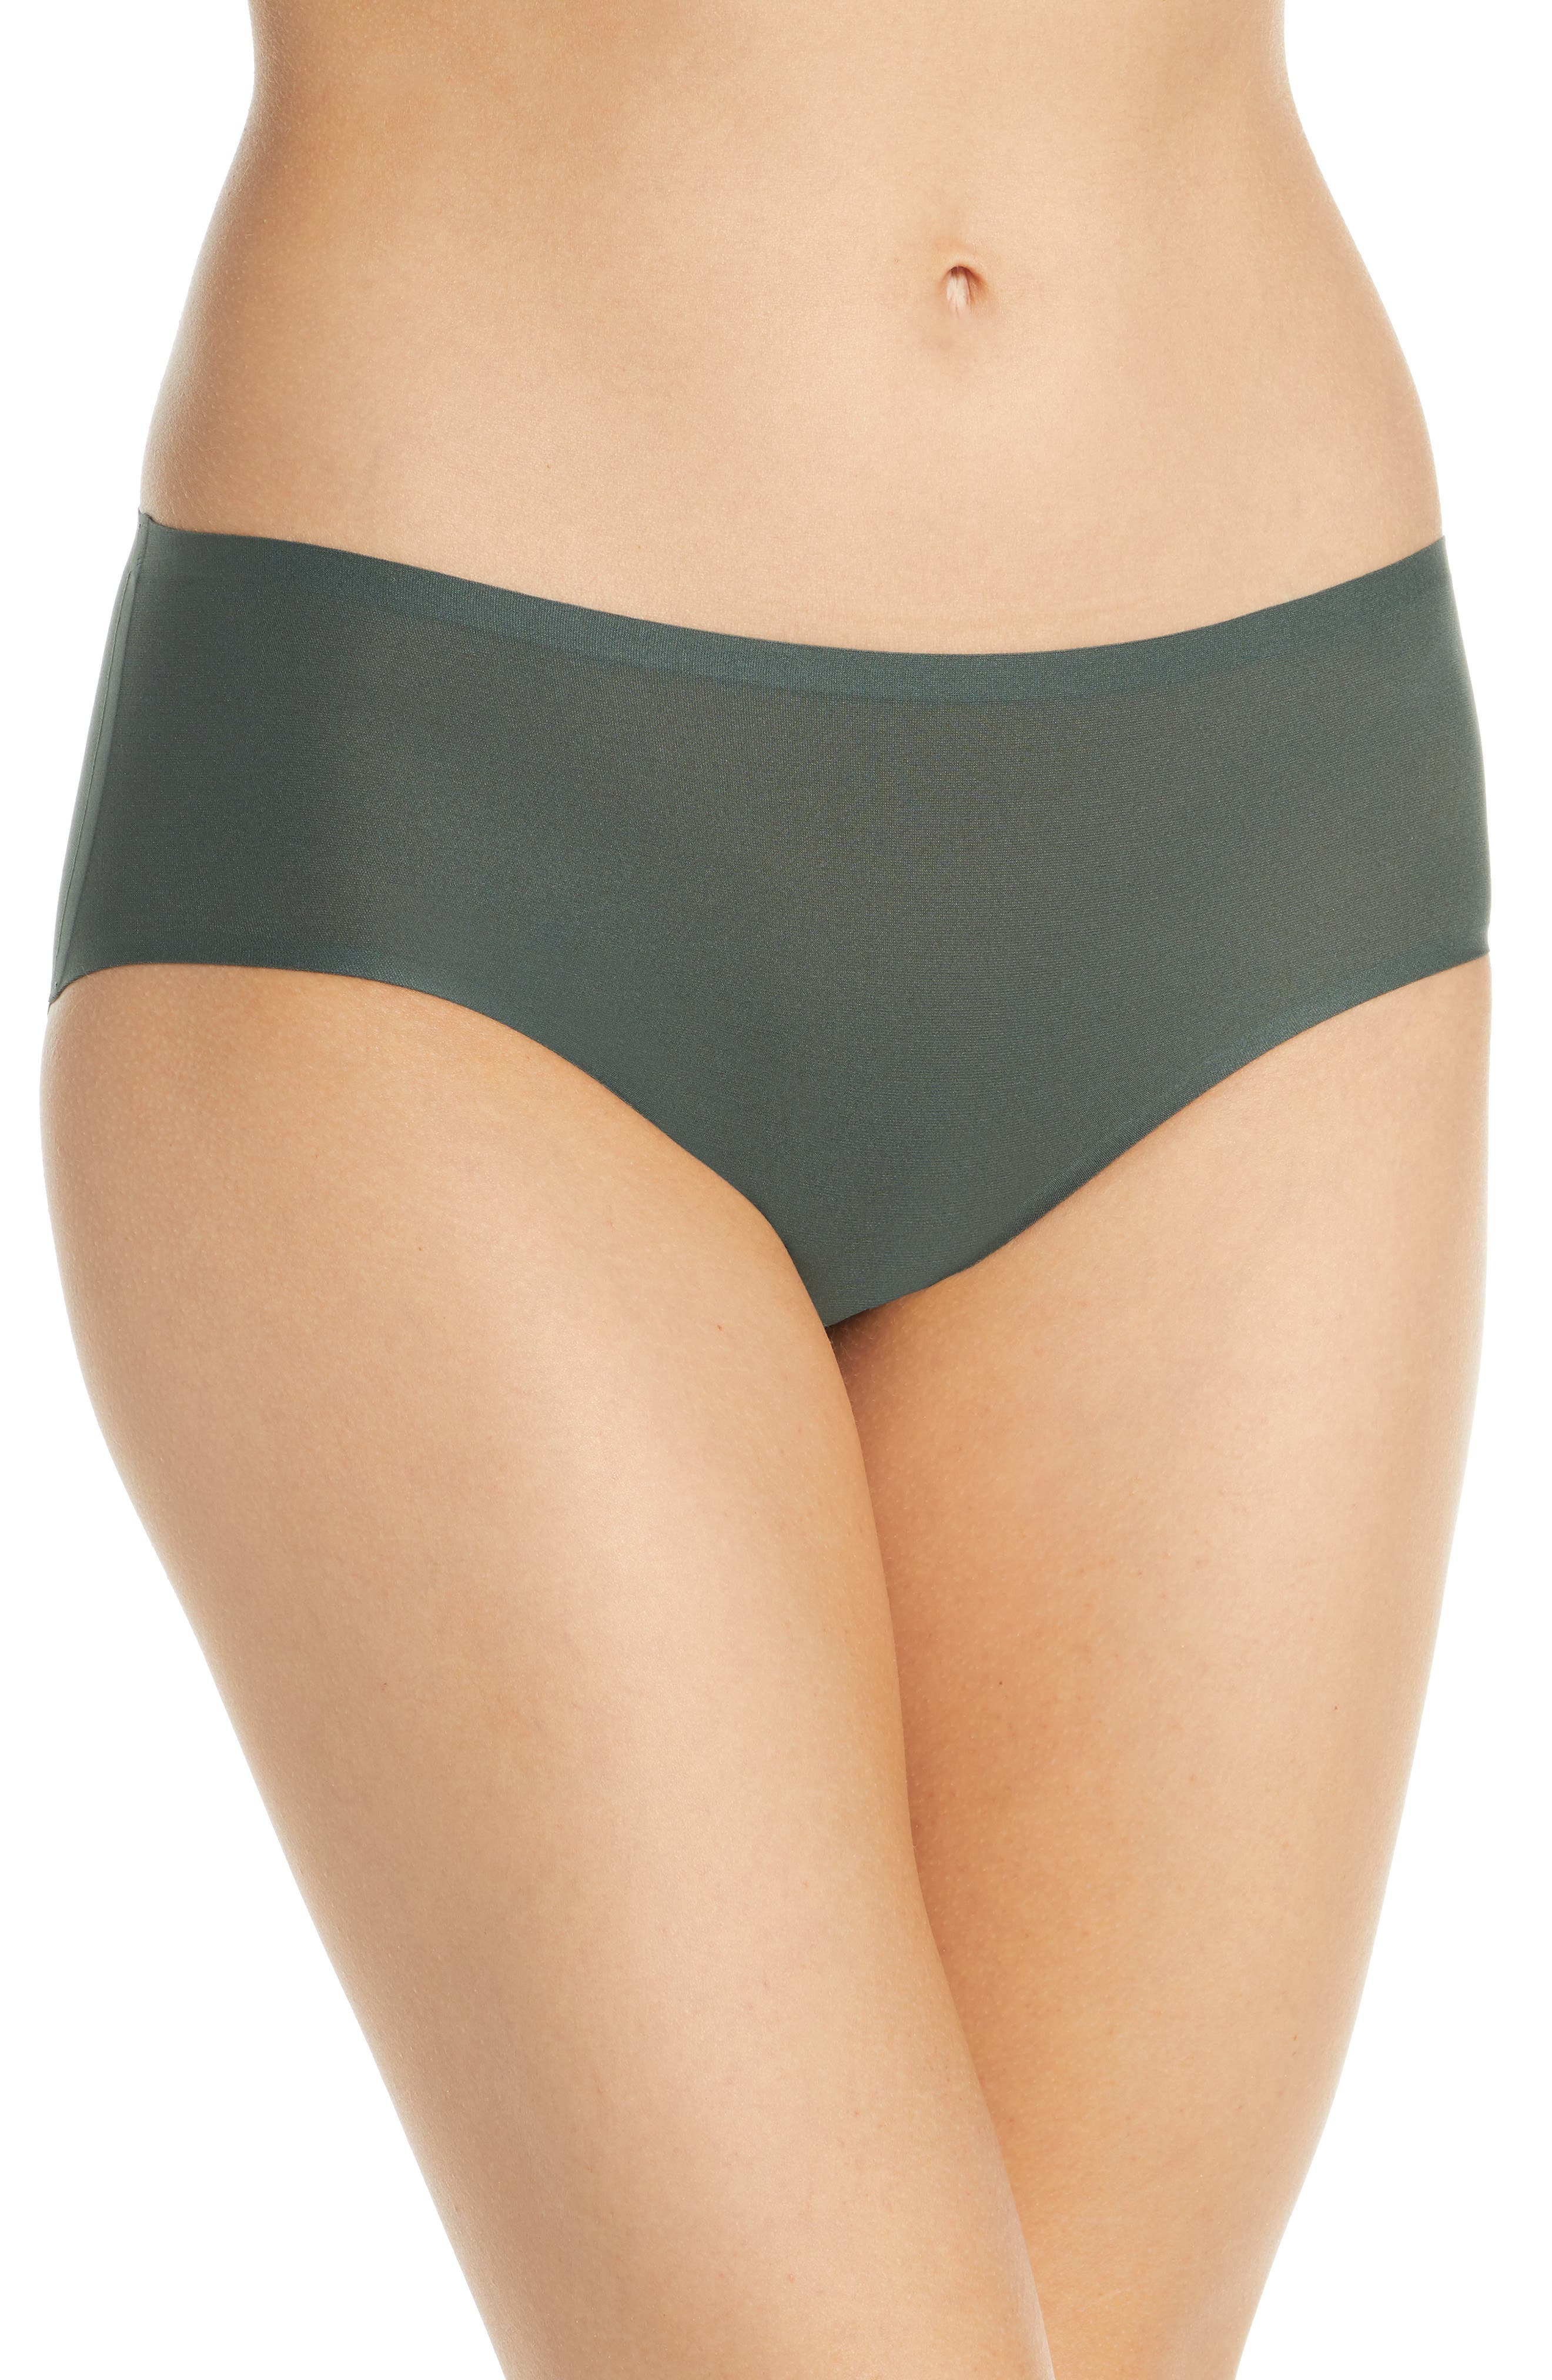 Chantelle Lingerie Soft Stretch Seamless Hipster Panties (Any 3 for $40)